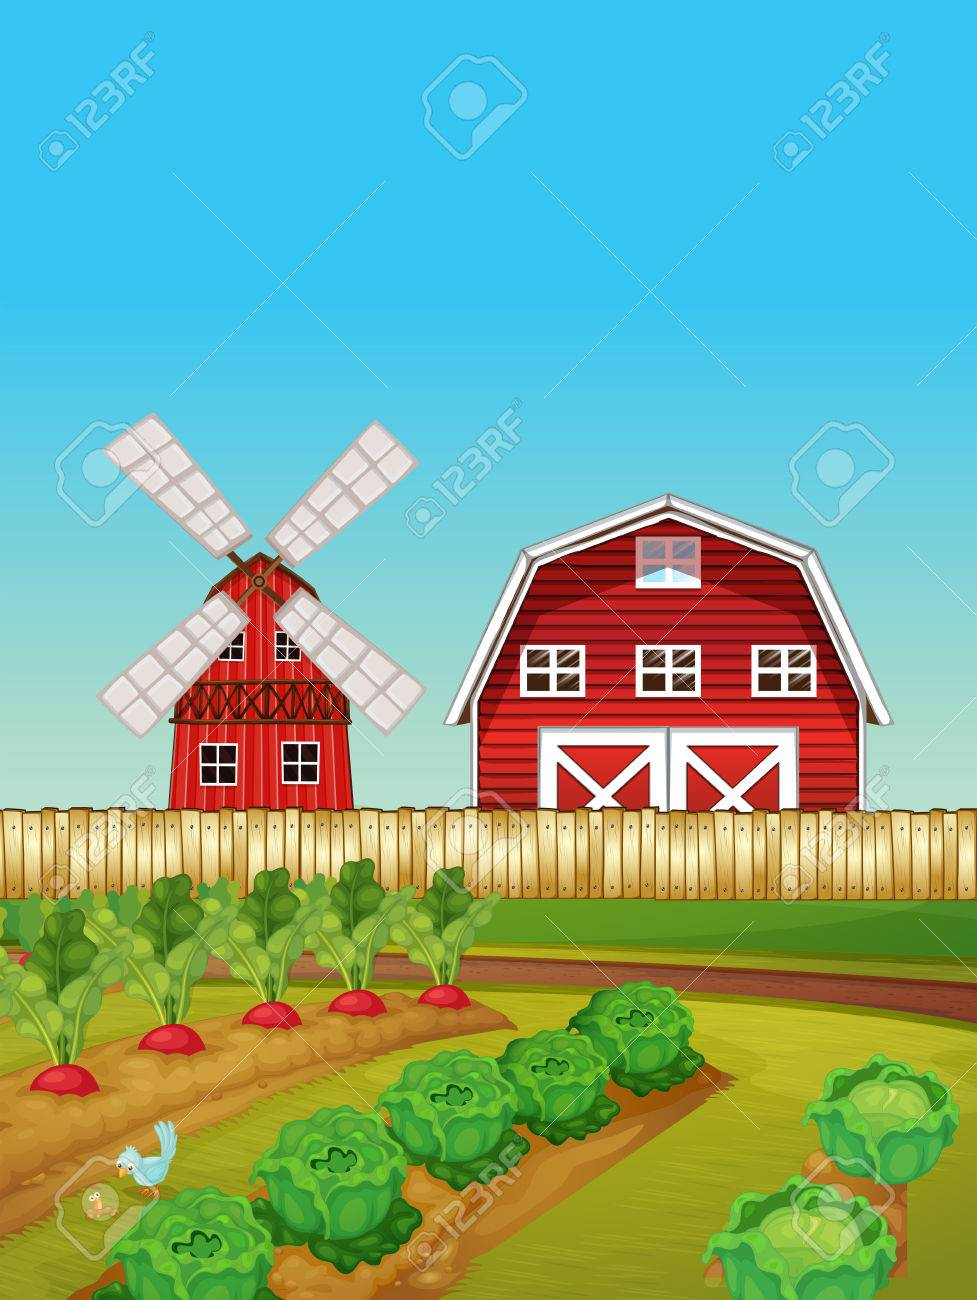 Farm scene with vegetable garden and barn illustration.